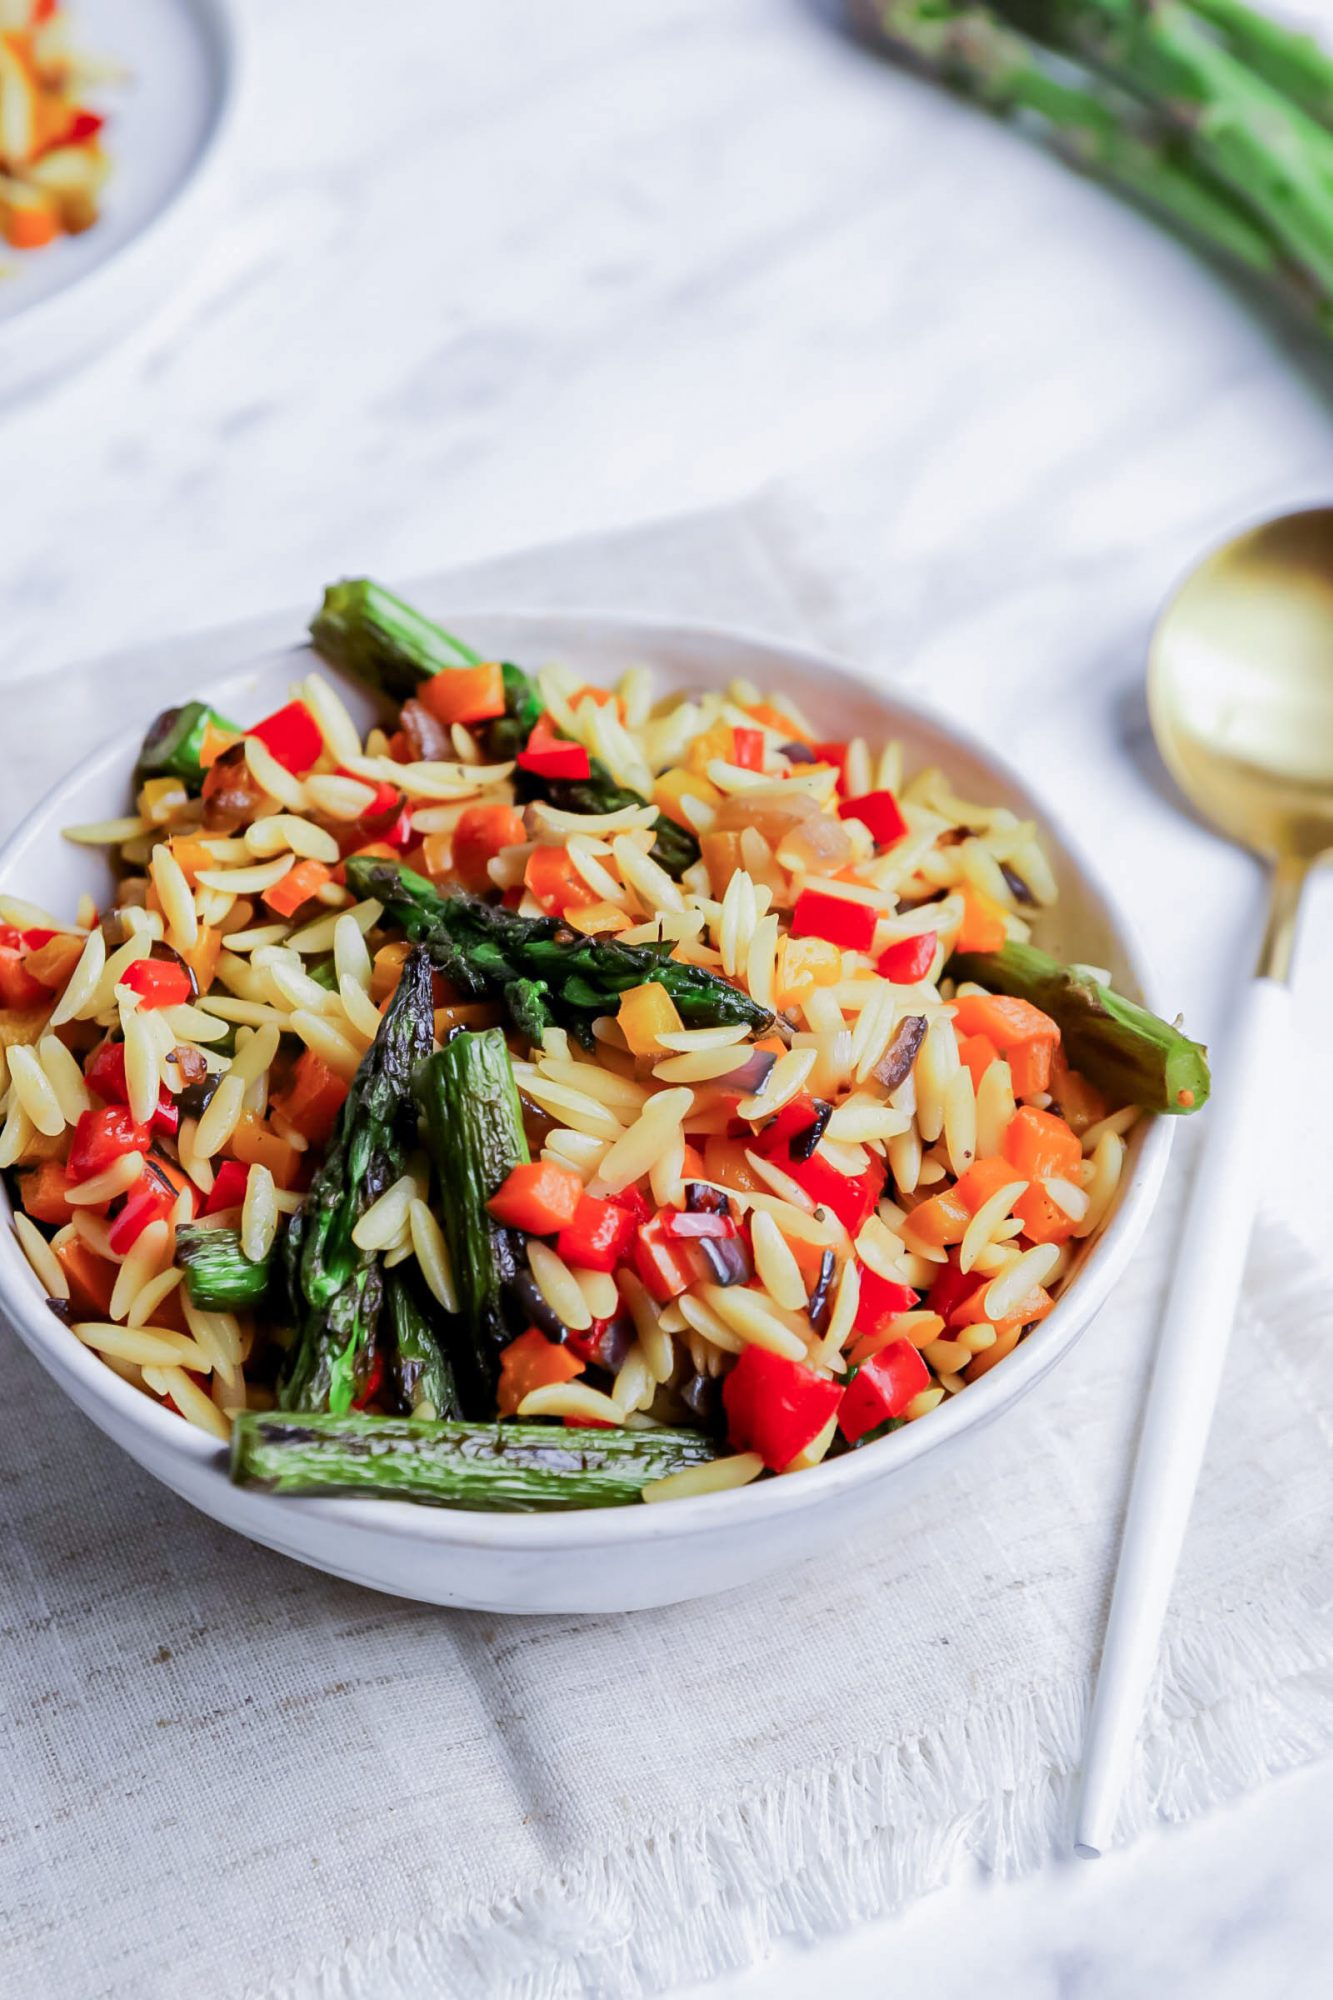 Sauteed Veggies and Orzo